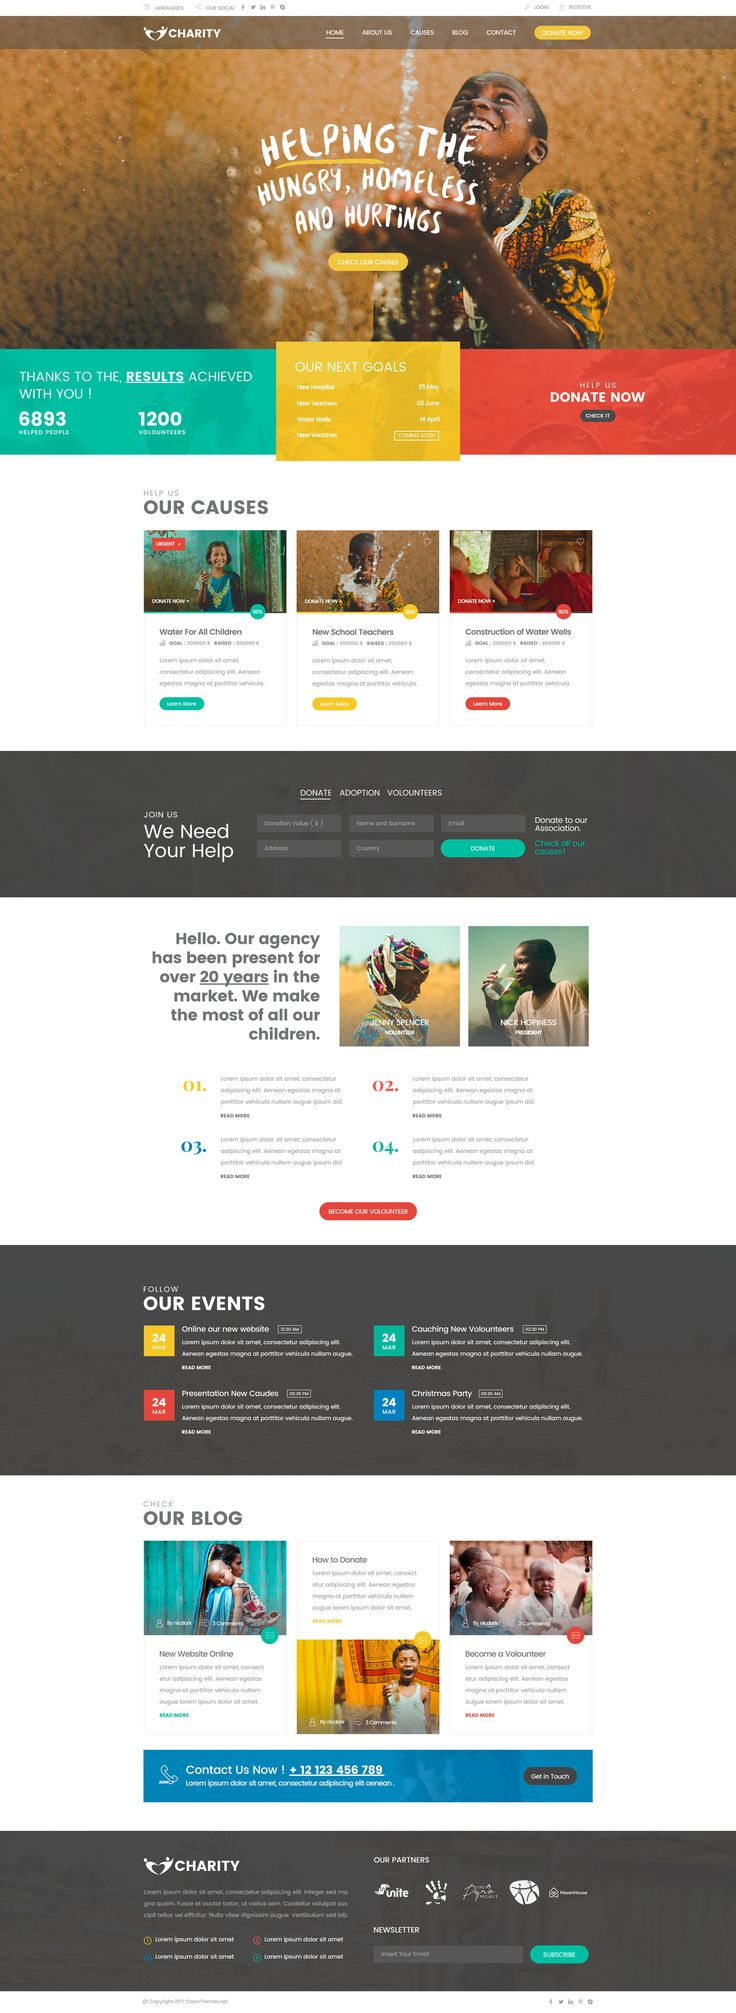 Charity Foundation - Charity Hub PSD Template #Refugee #social #volunteer • Download ➝ https://themeforest.net/item/charity-foundation-charity-hub-psd-template/19640689?ref=pxcr